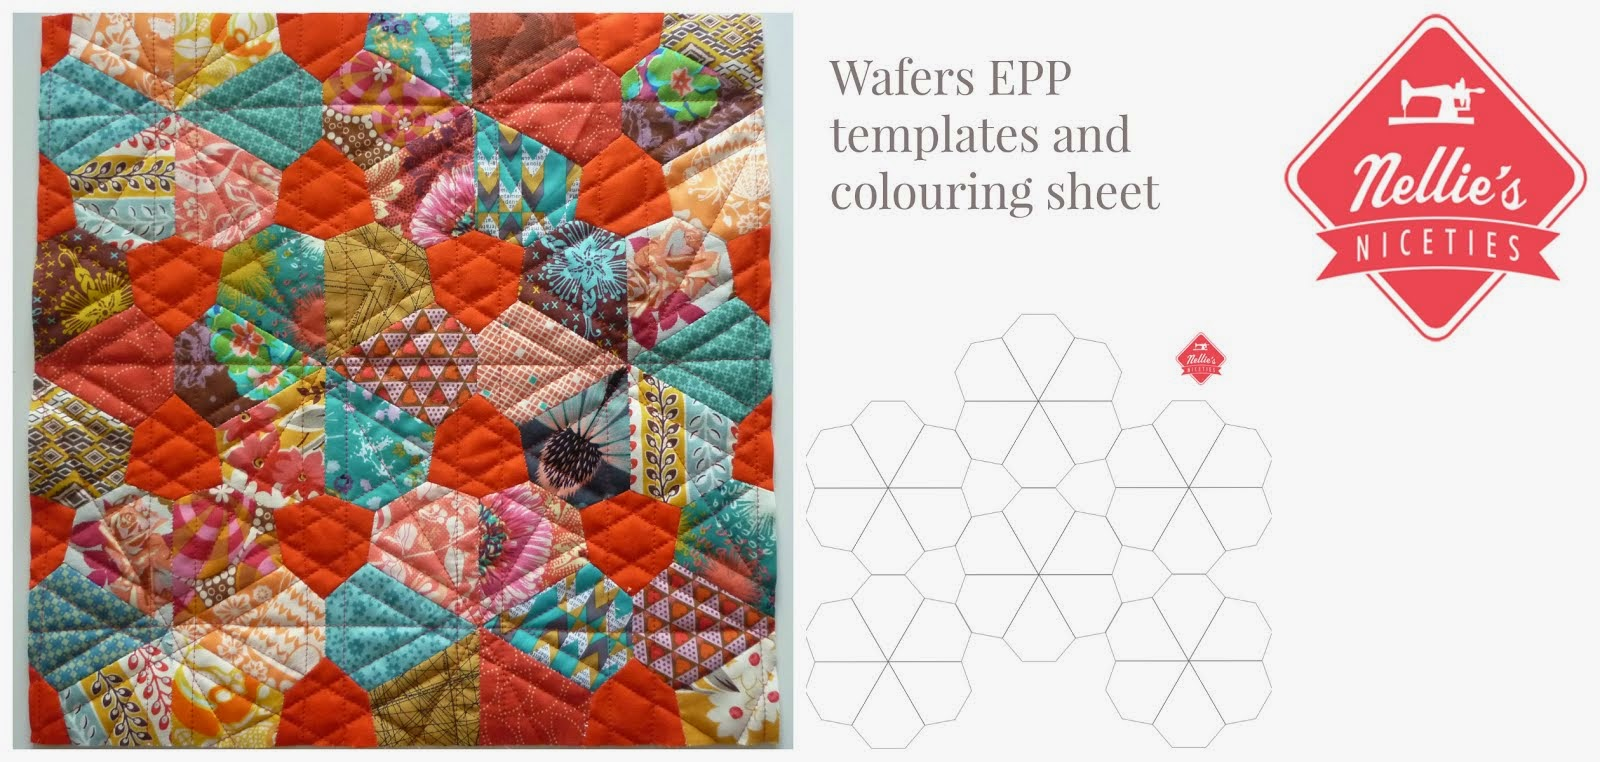 Wafers EPP templates